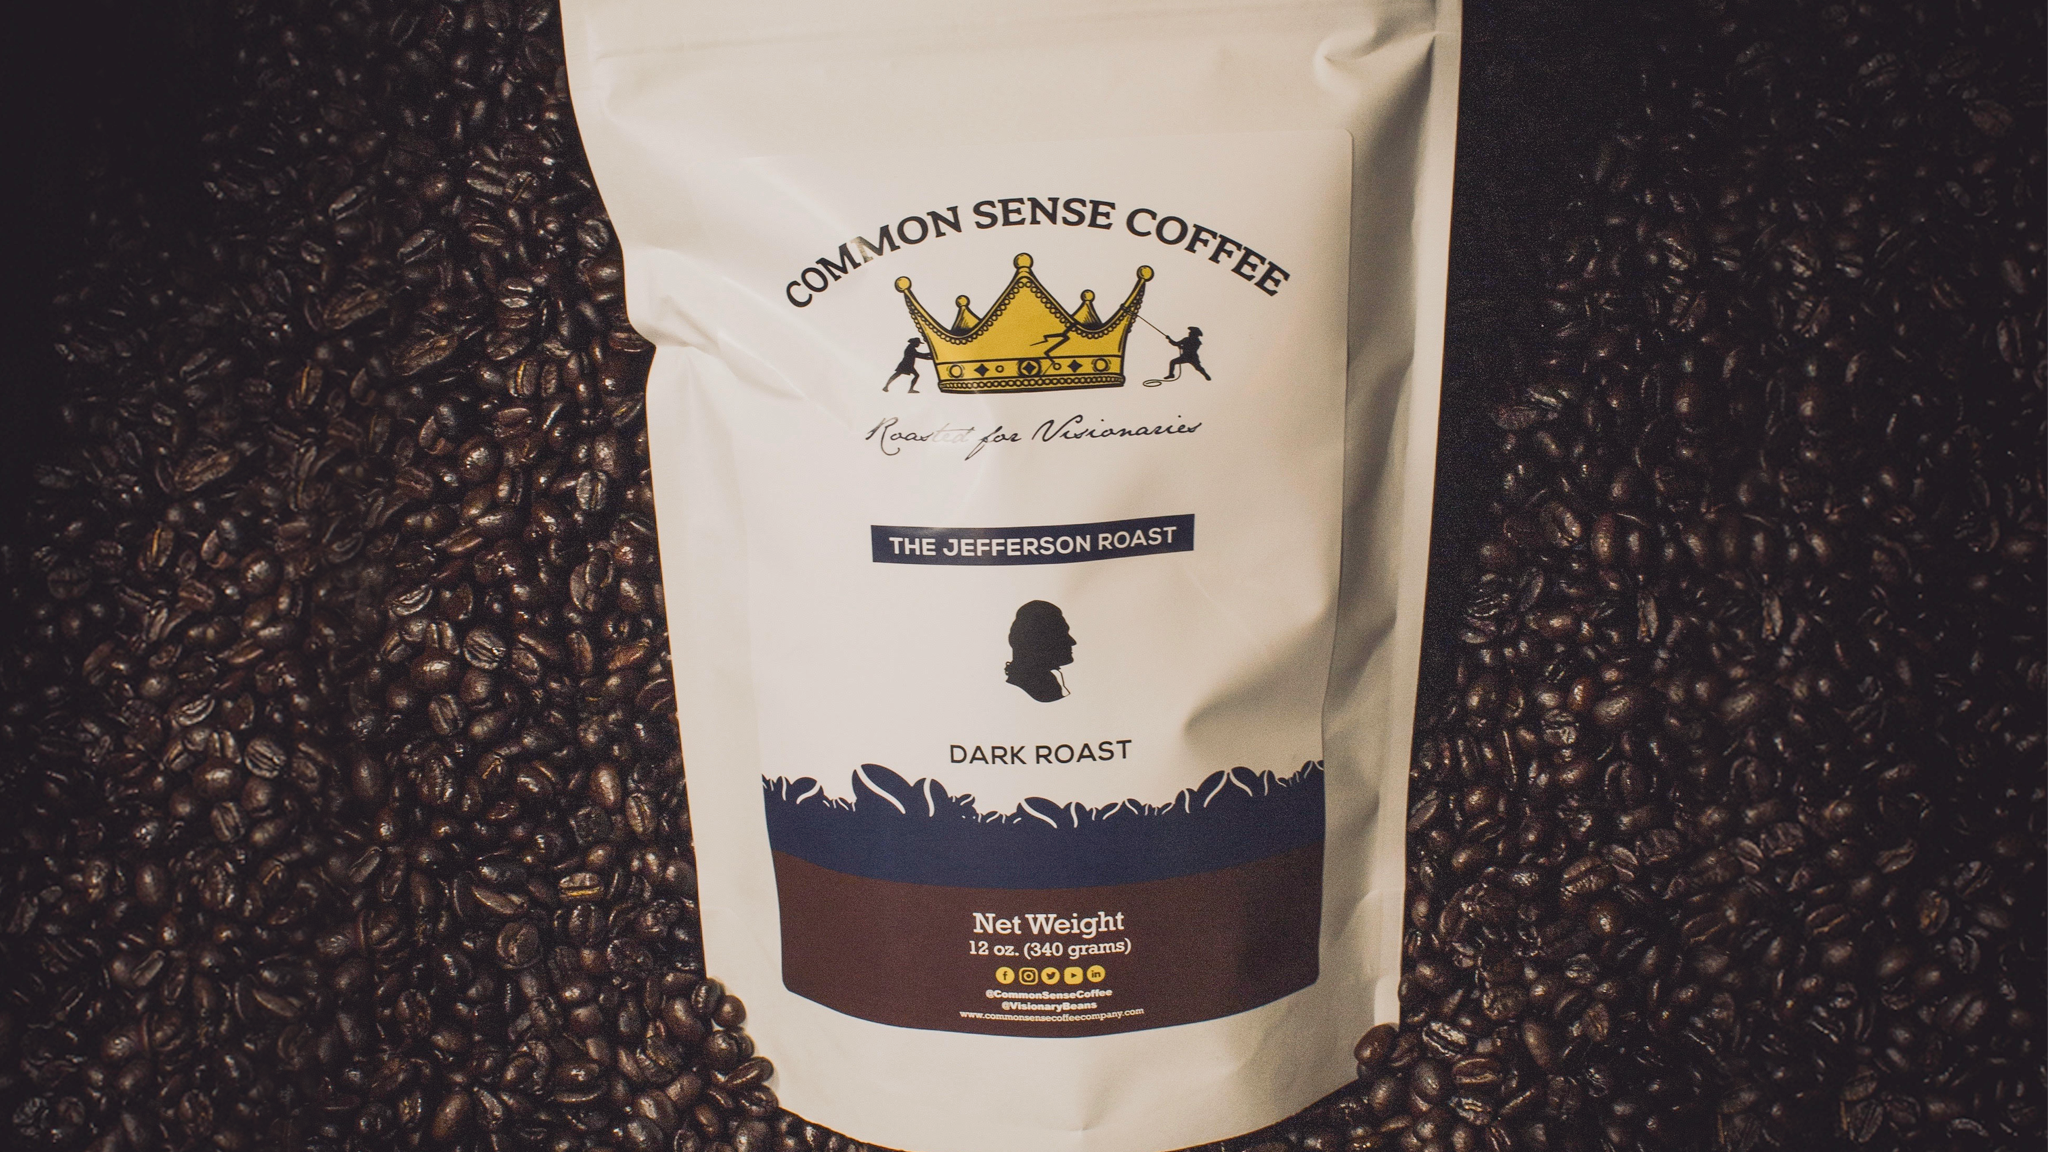 Common Sense Coffee's Jefferson Roast is roasted with single-origin beans from Guatemala.